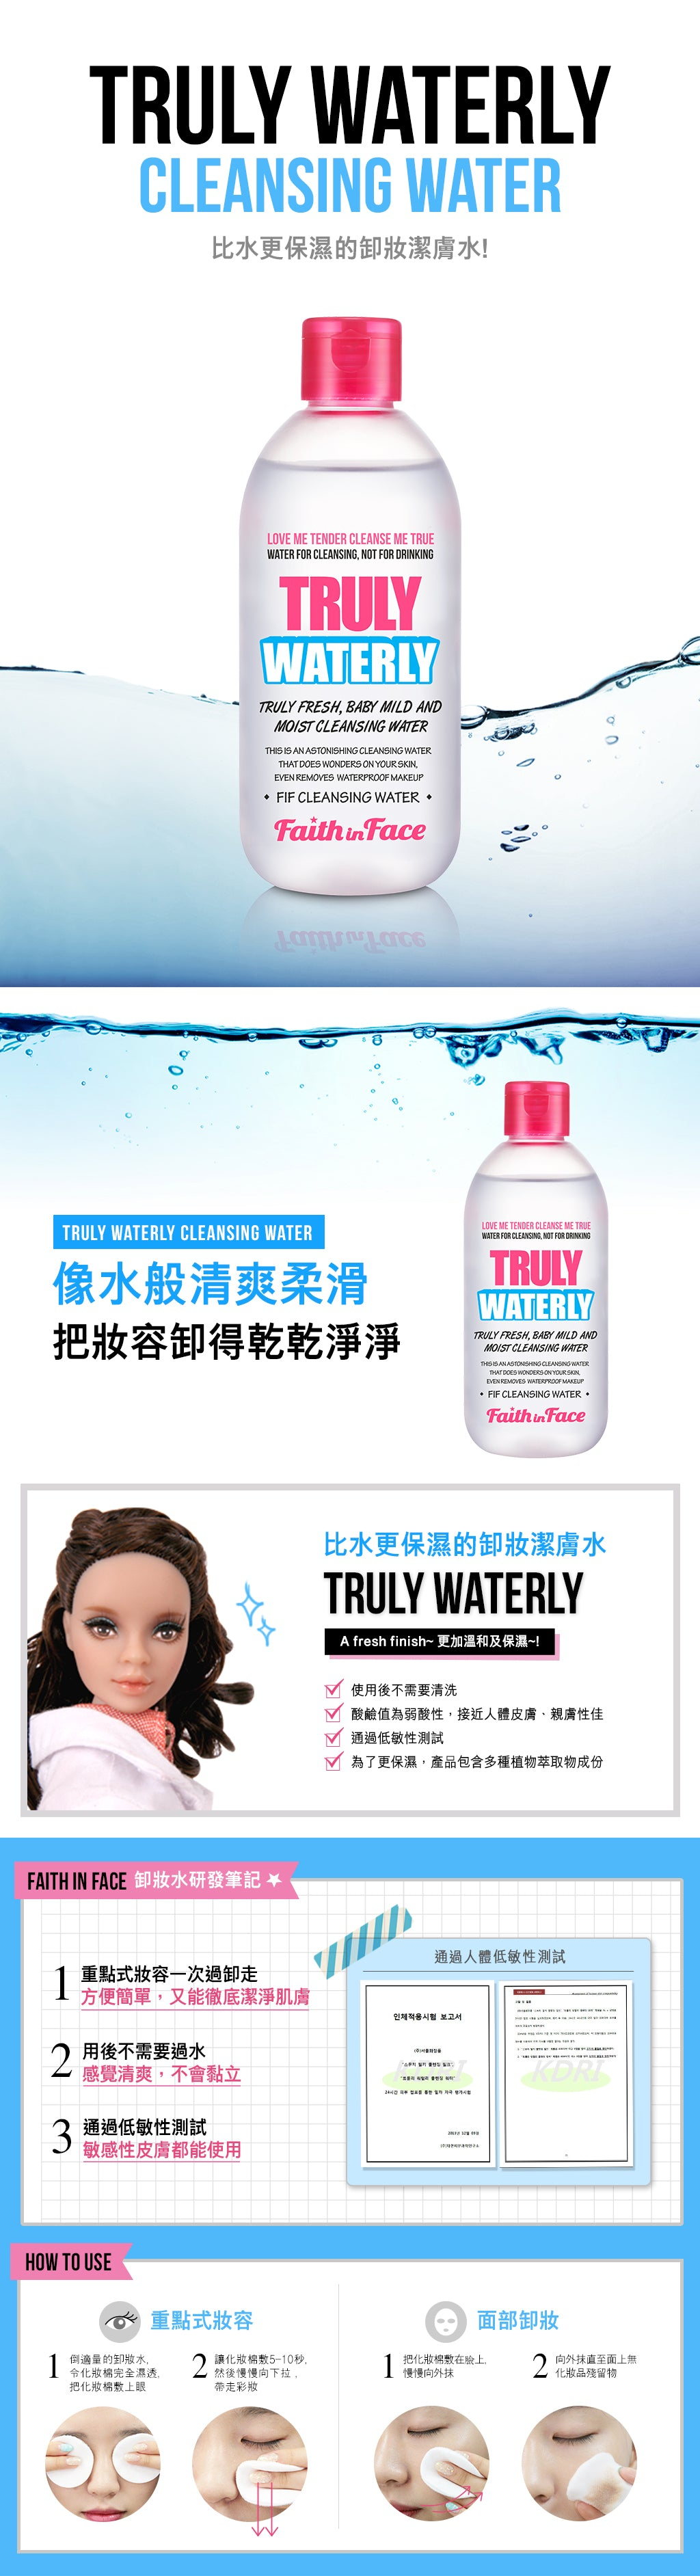 Jetour Mall Faith in Face保濕卸妝保濕潔膚水 Truly Waterly Cleansing Water